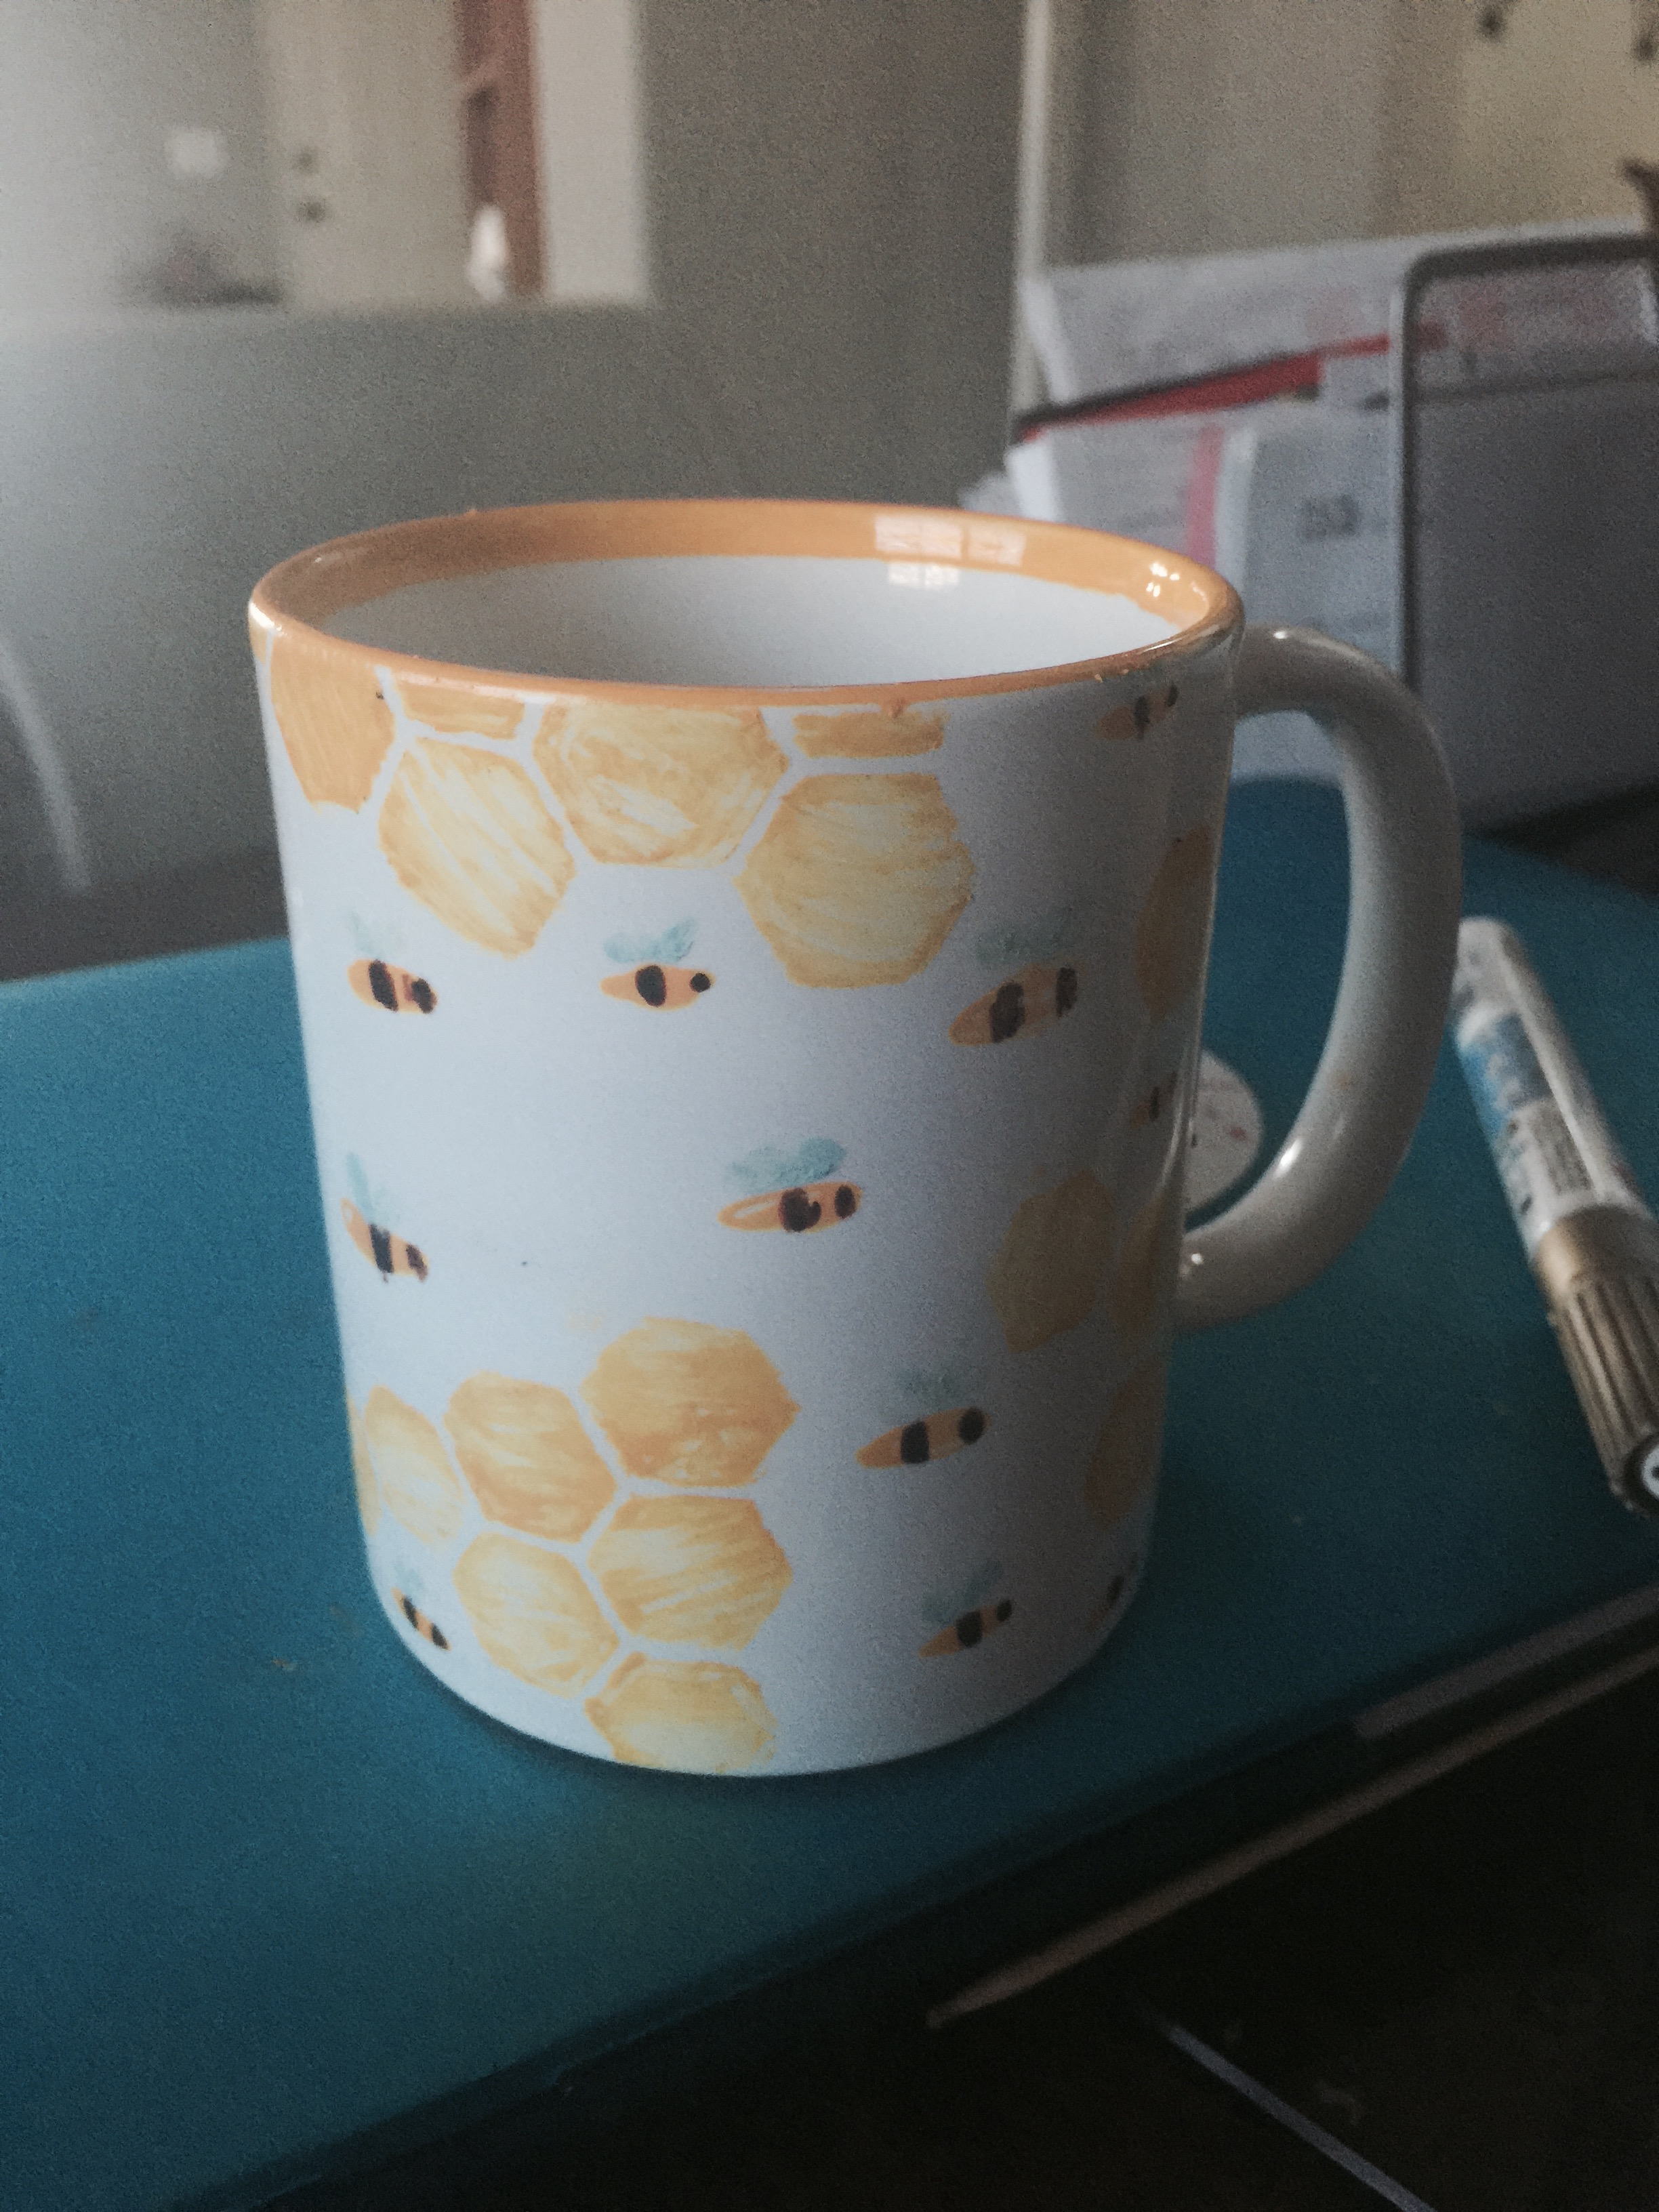 A Marble In A Cup Of Honey : Bee cup · baker street shop online store powered by storenvy